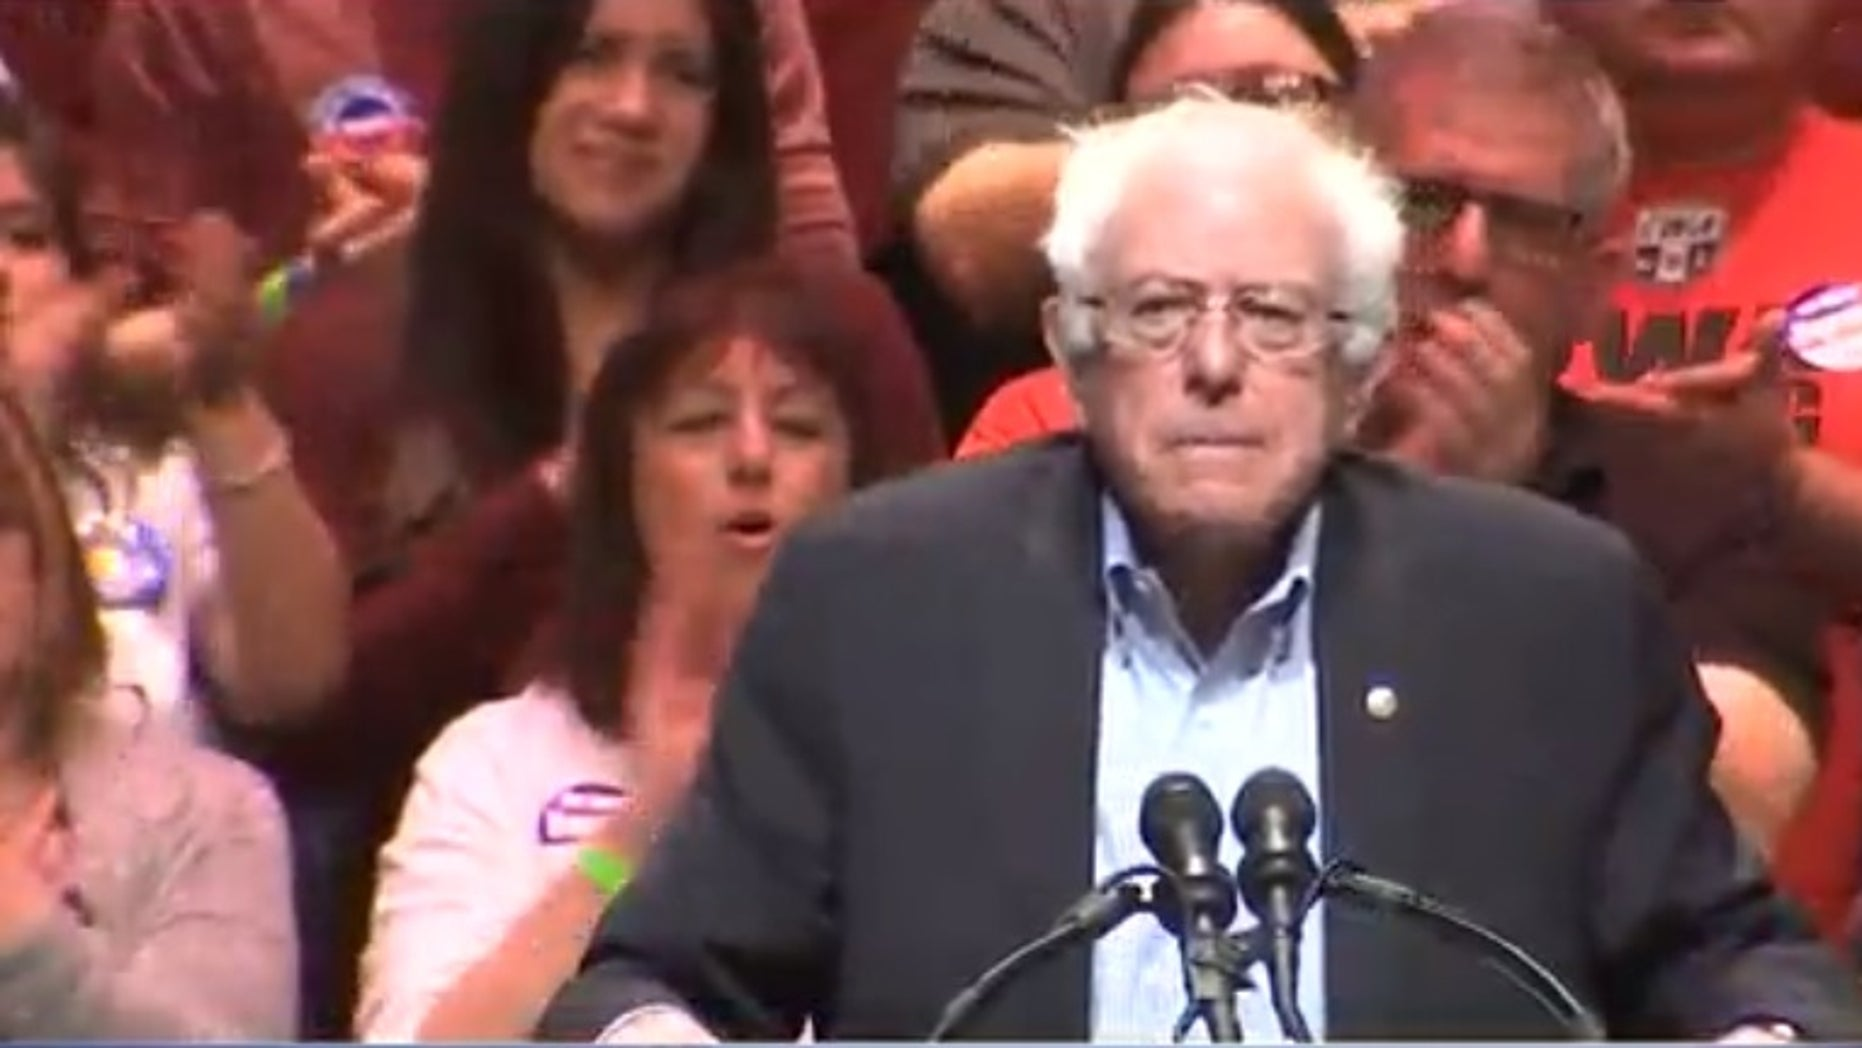 Vermont Independent Sen. Bernie Sanders took the podium in front of thousands of people at his rally in downtown Phoenix.